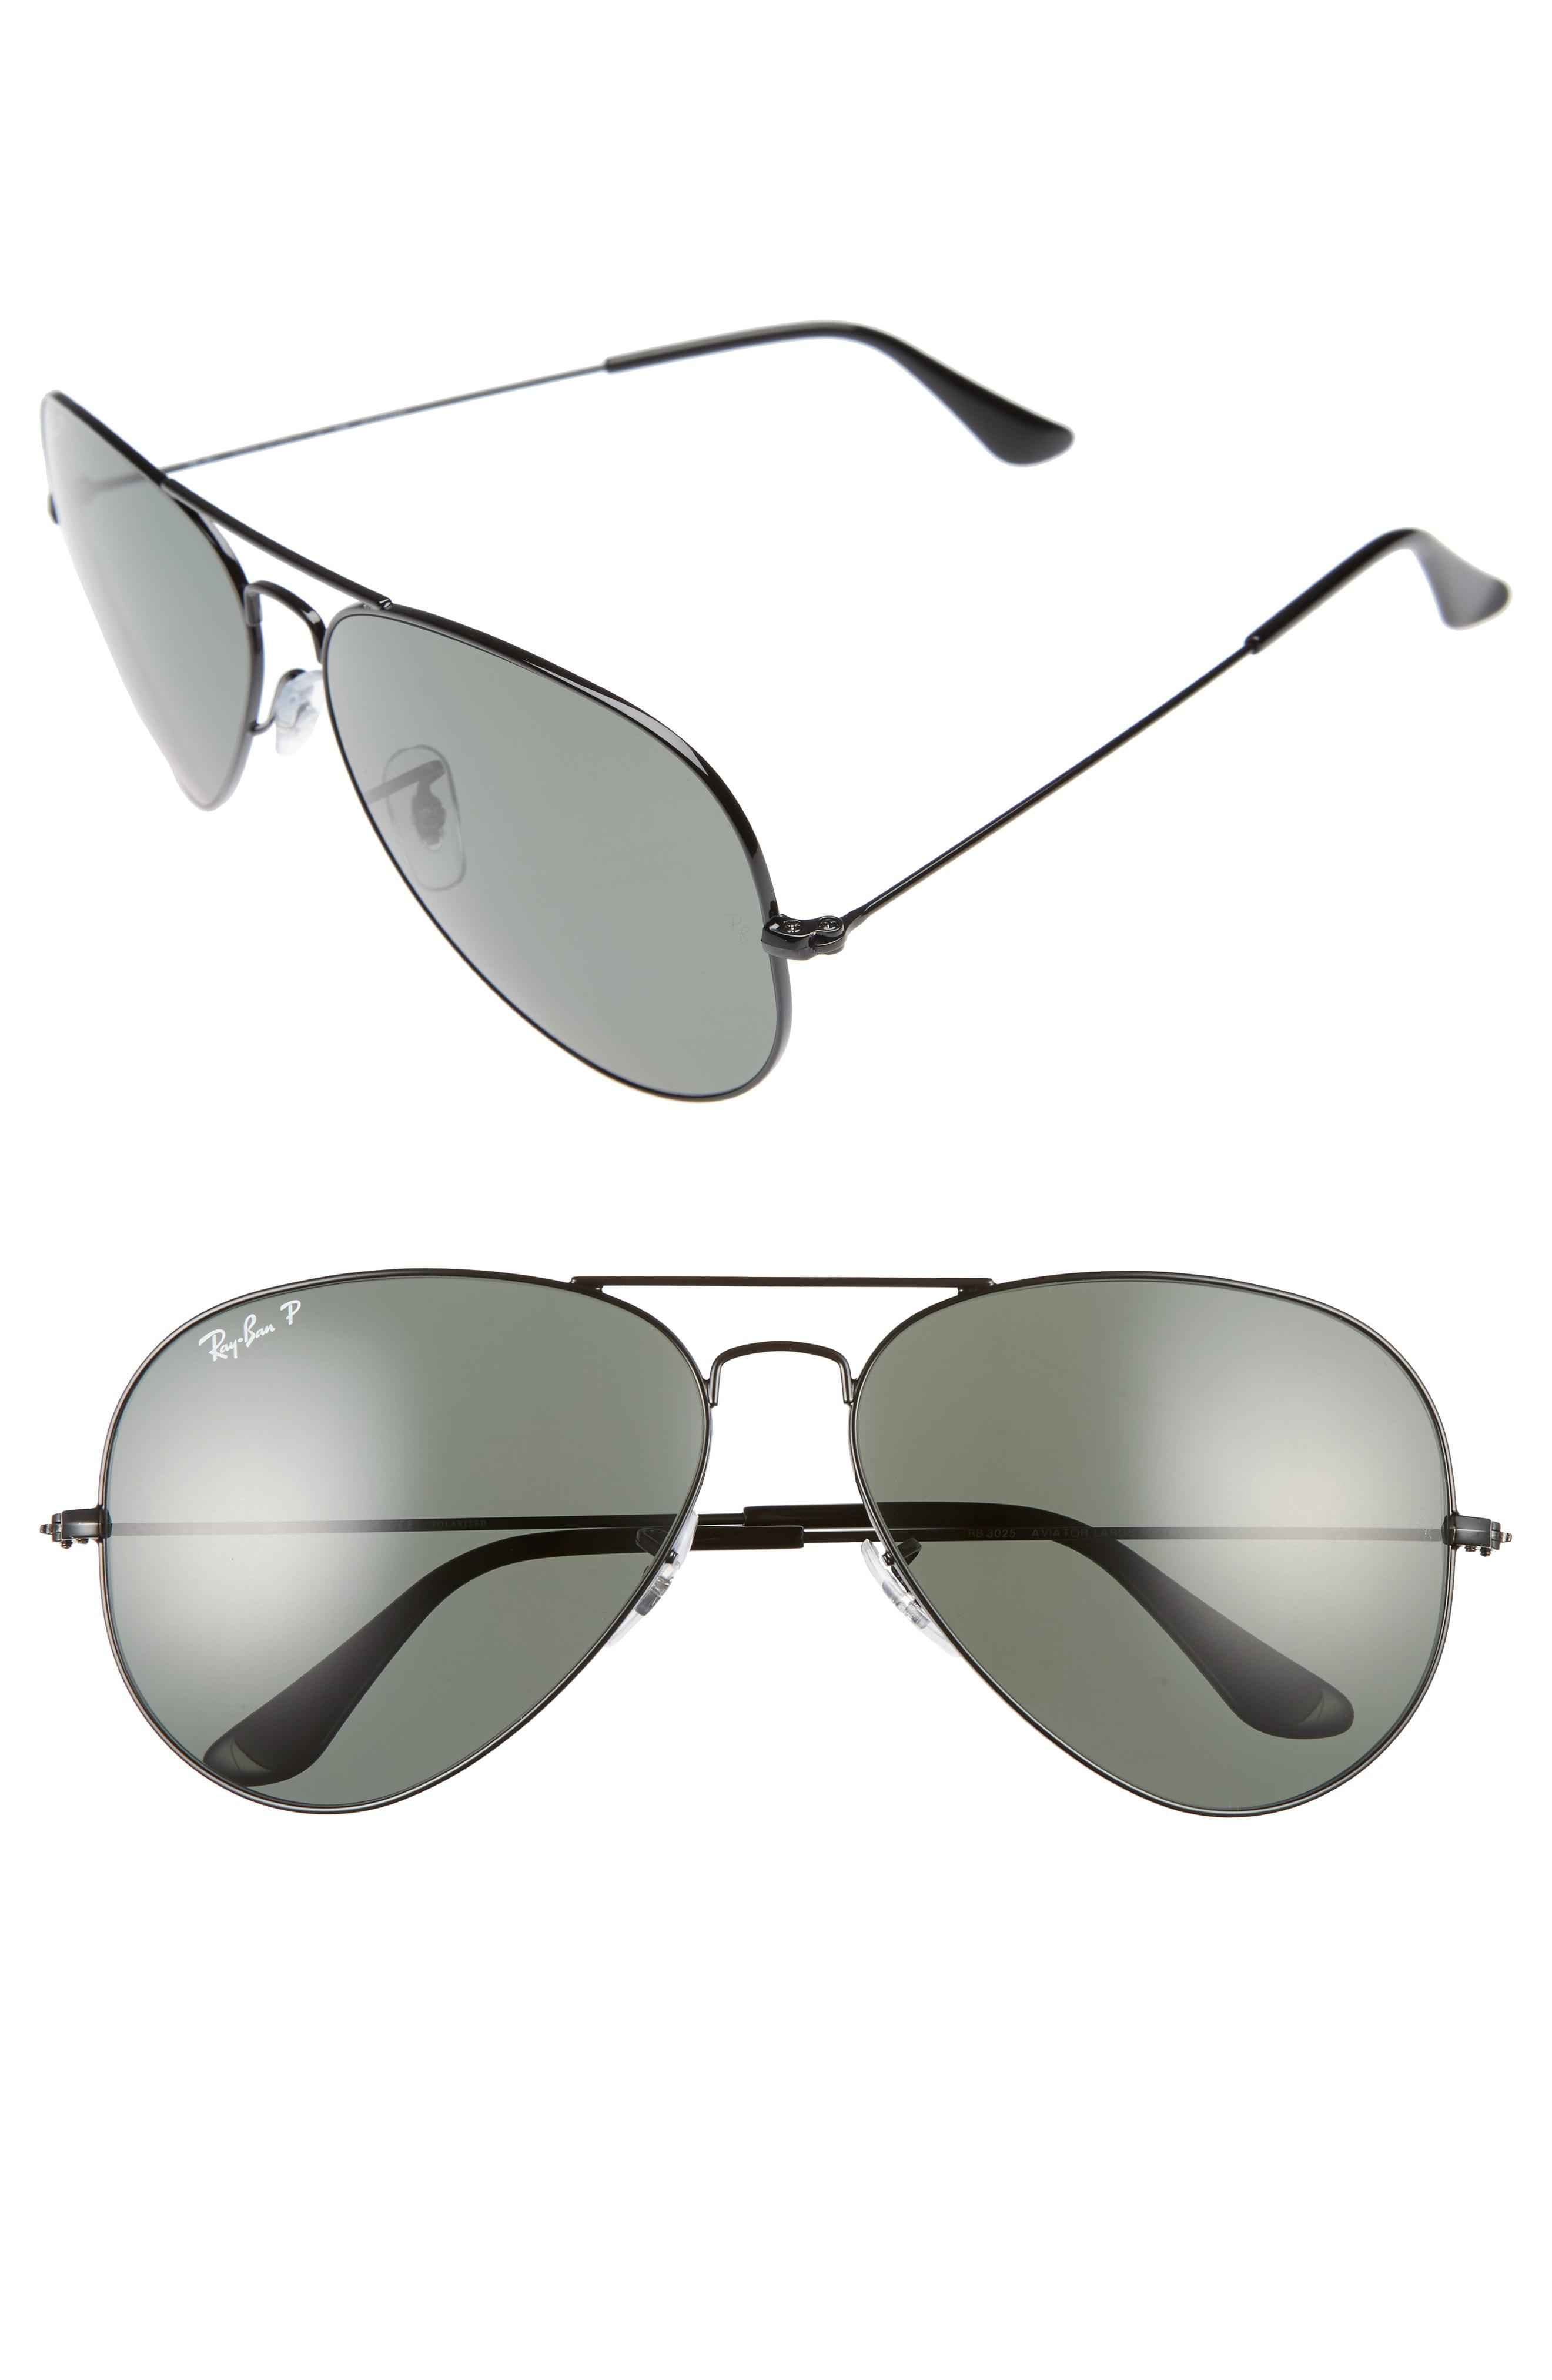 5964a648ae4ced Ray-Ban. Men s Black Icons 62mm Polarized Aviator Sunglasses.  203 From  Nordstrom. Free shipping ...